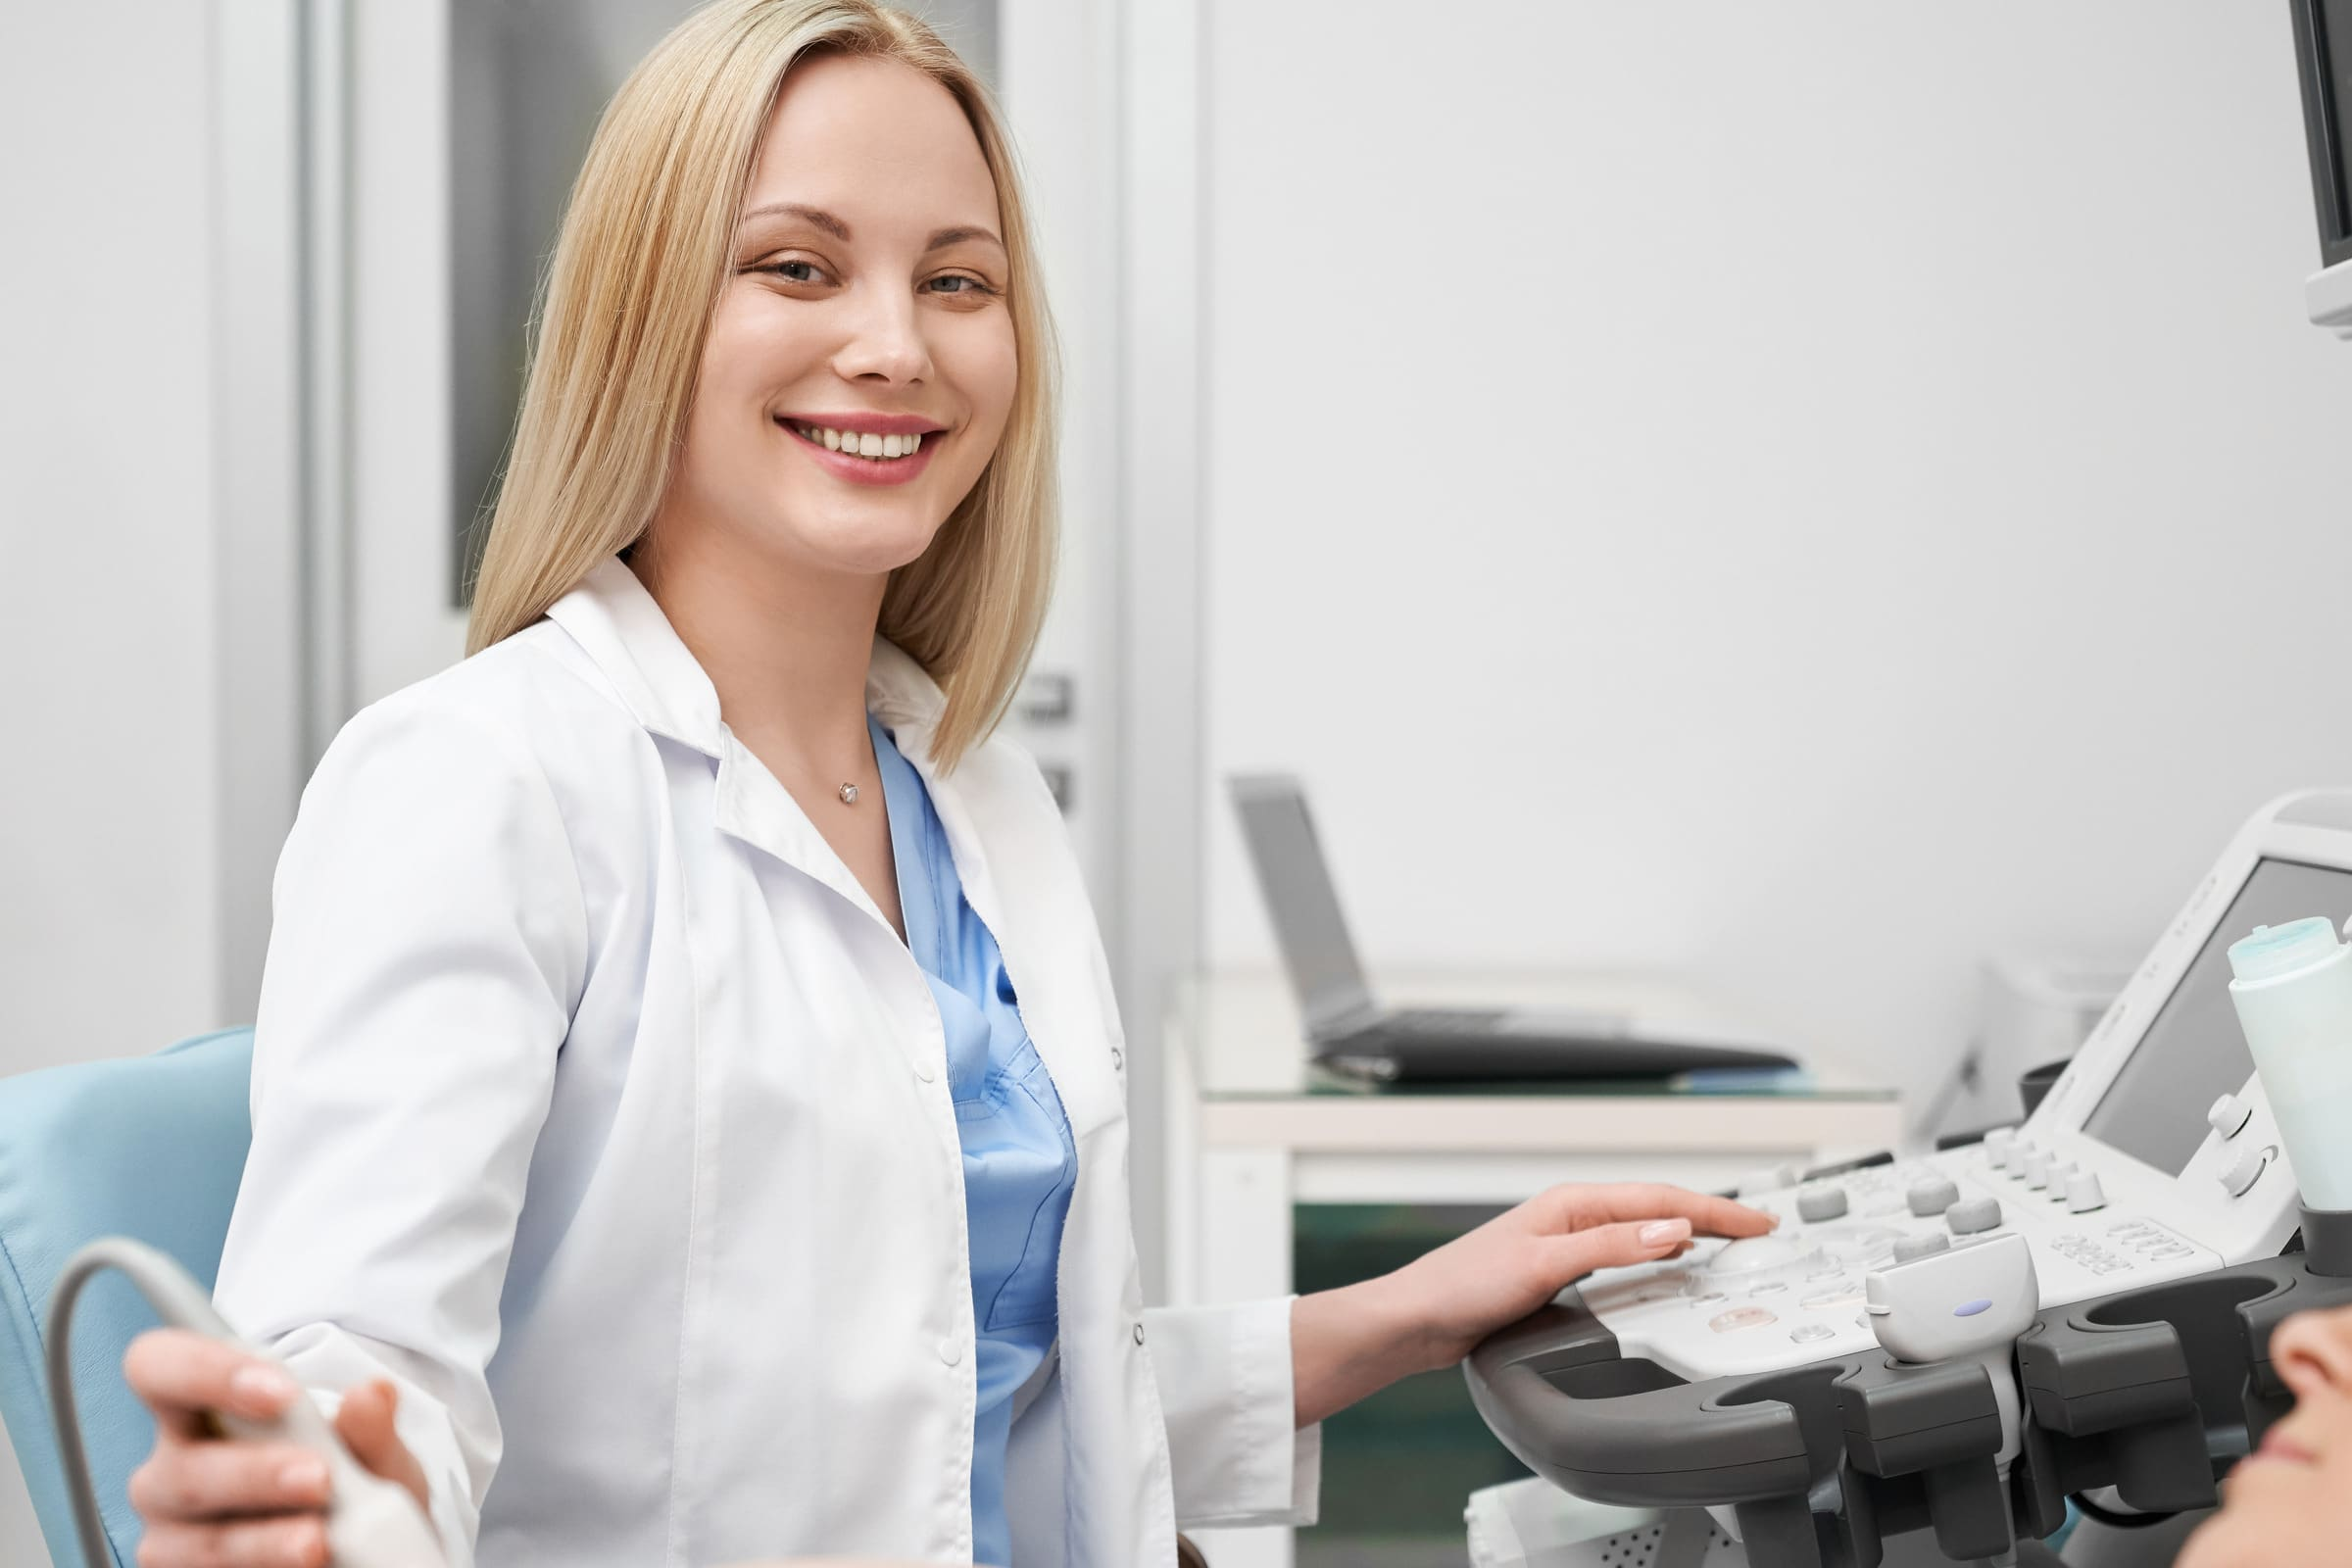 Female performing cardiovascular sonography